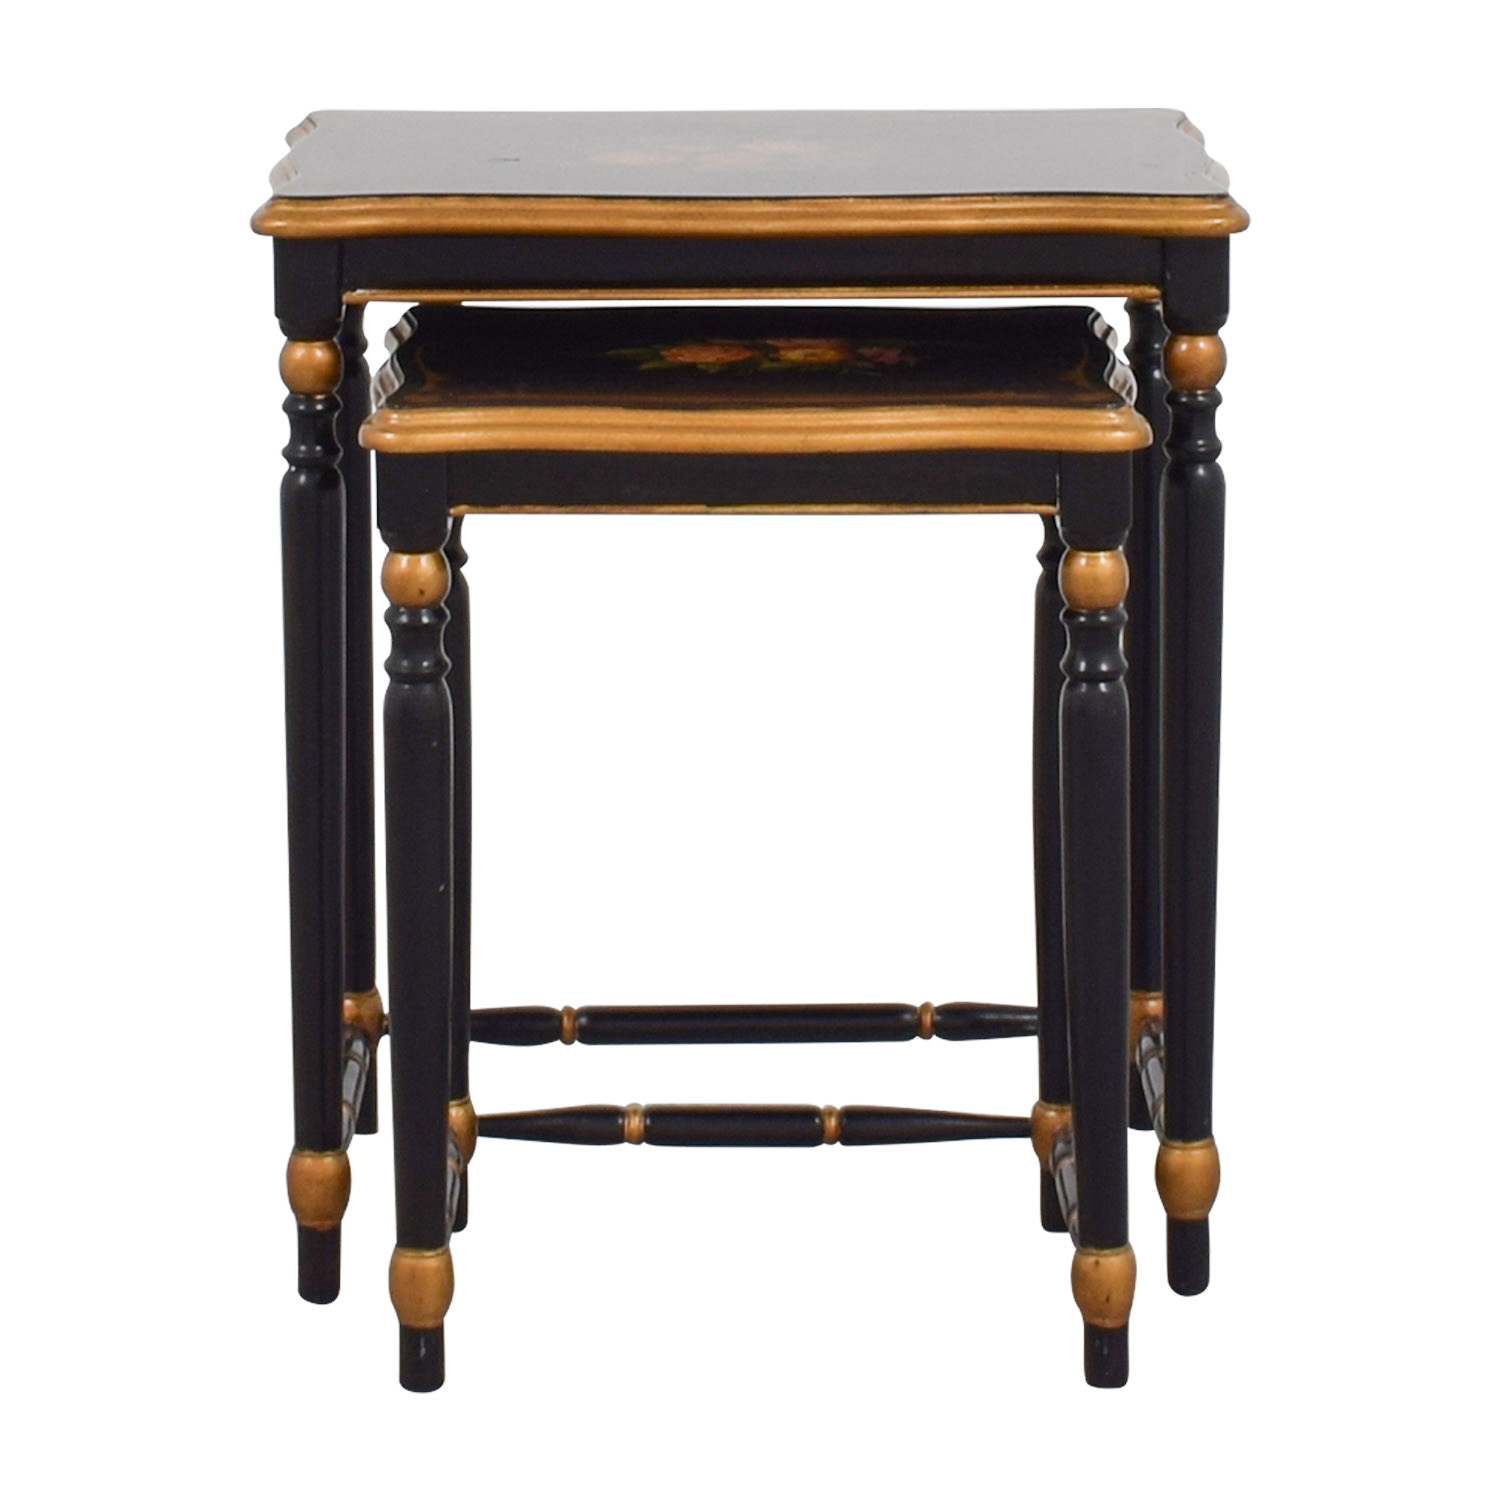 Oriental Accent Oriental Accent Nesting Tables with Painted Flower Design nyc